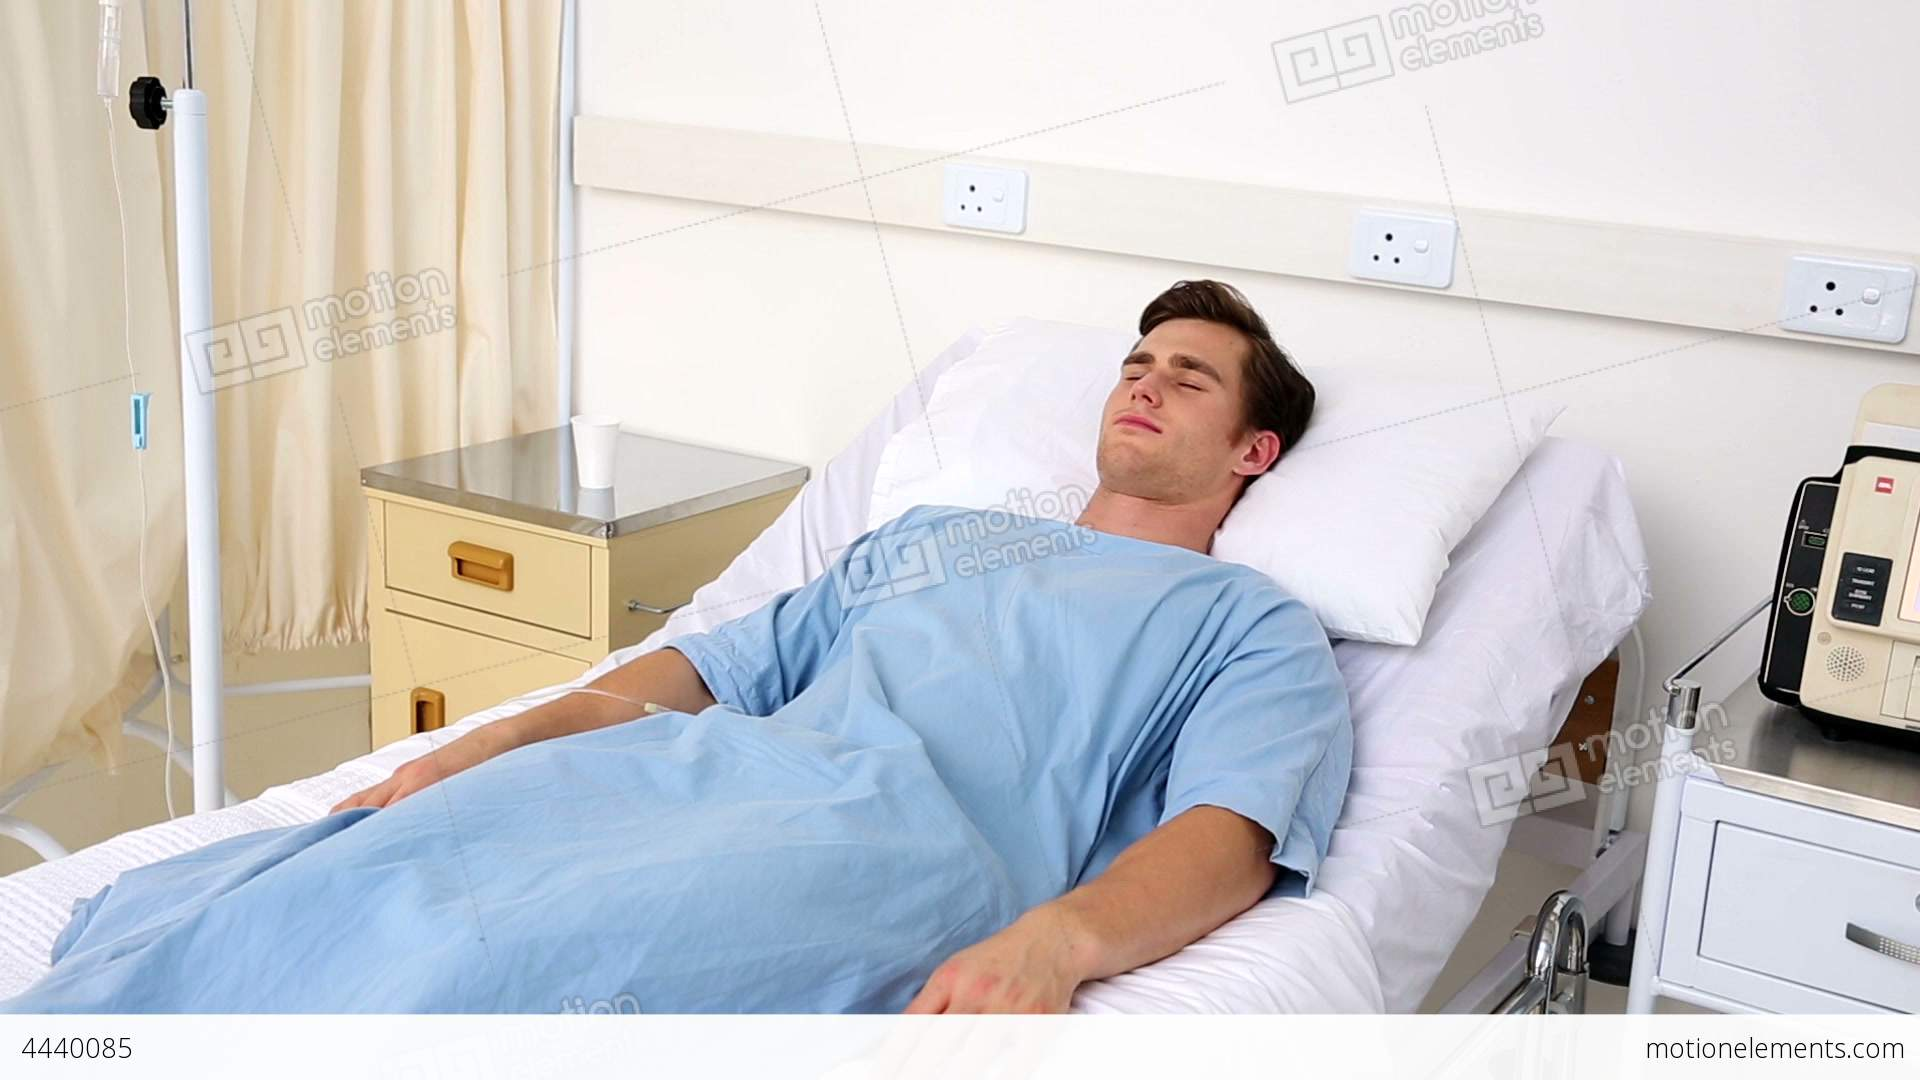 Picture Of Sick Person In Hospital Bed : Sick Man In Hospital sick man lying on hospital bed stock video ...